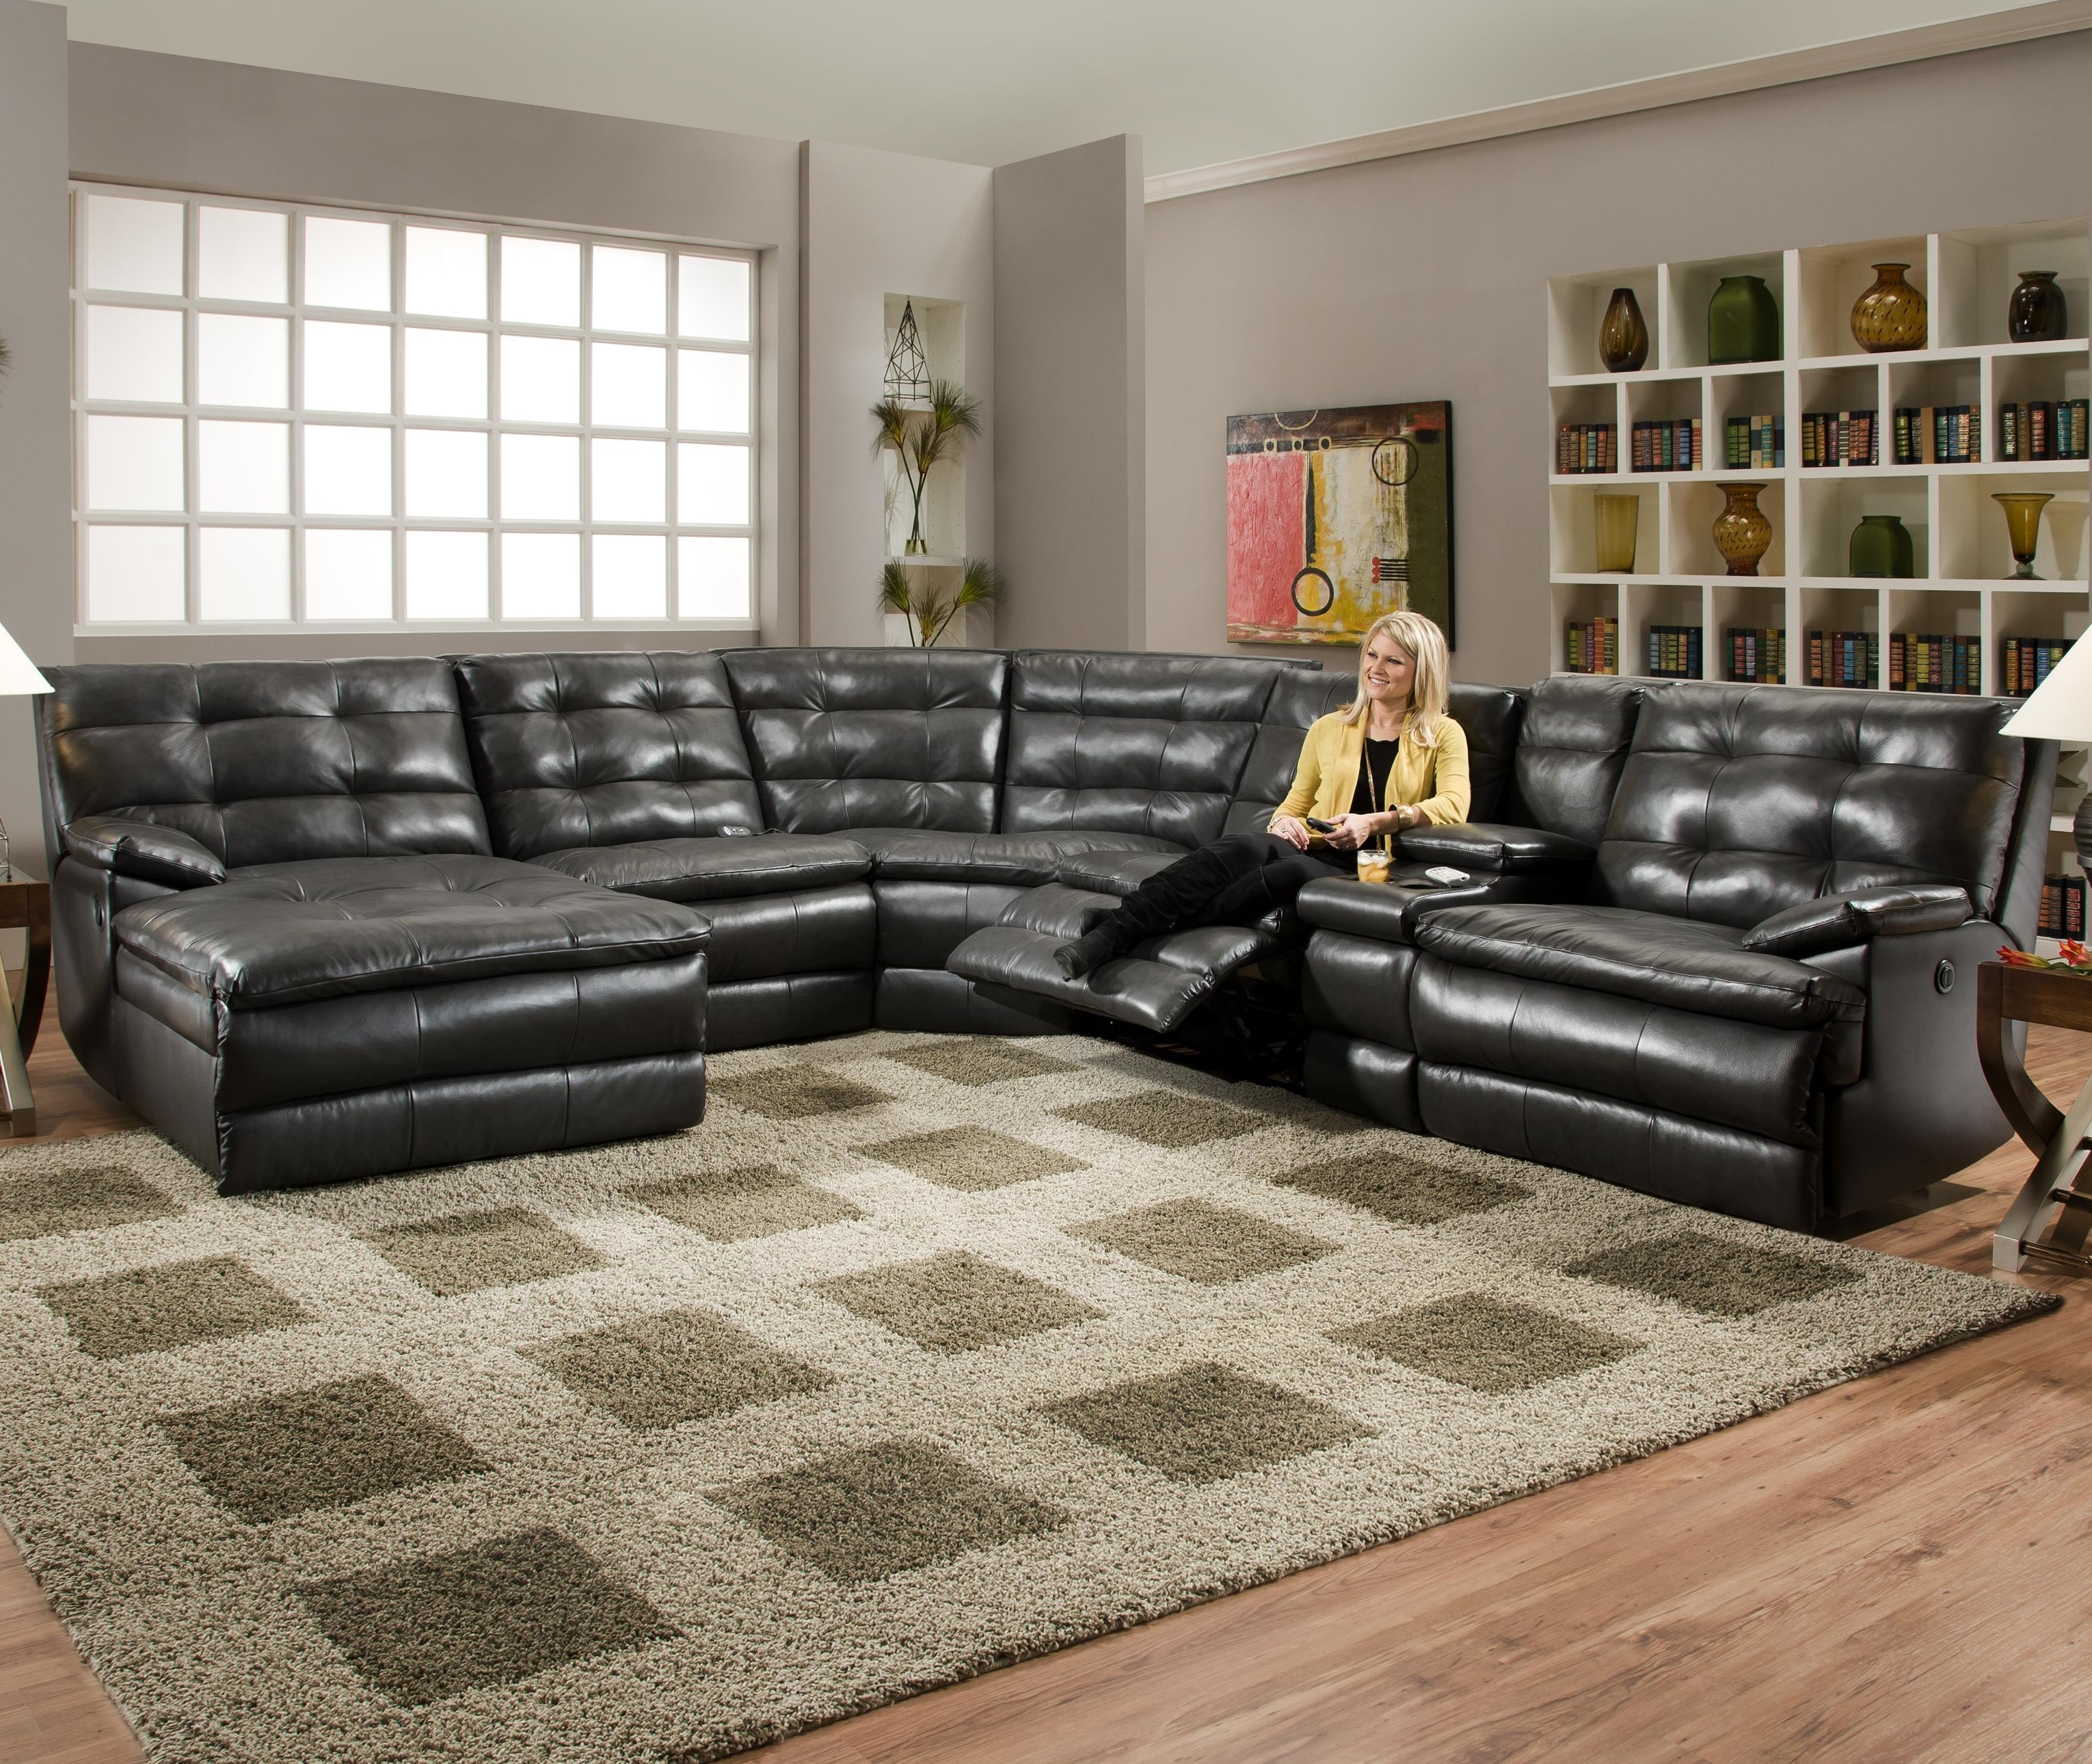 Luxurious Tufted Leather Sectional Sofa In Classy Black Color With Throughout Current Sectional Sofas In Stock (View 8 of 20)